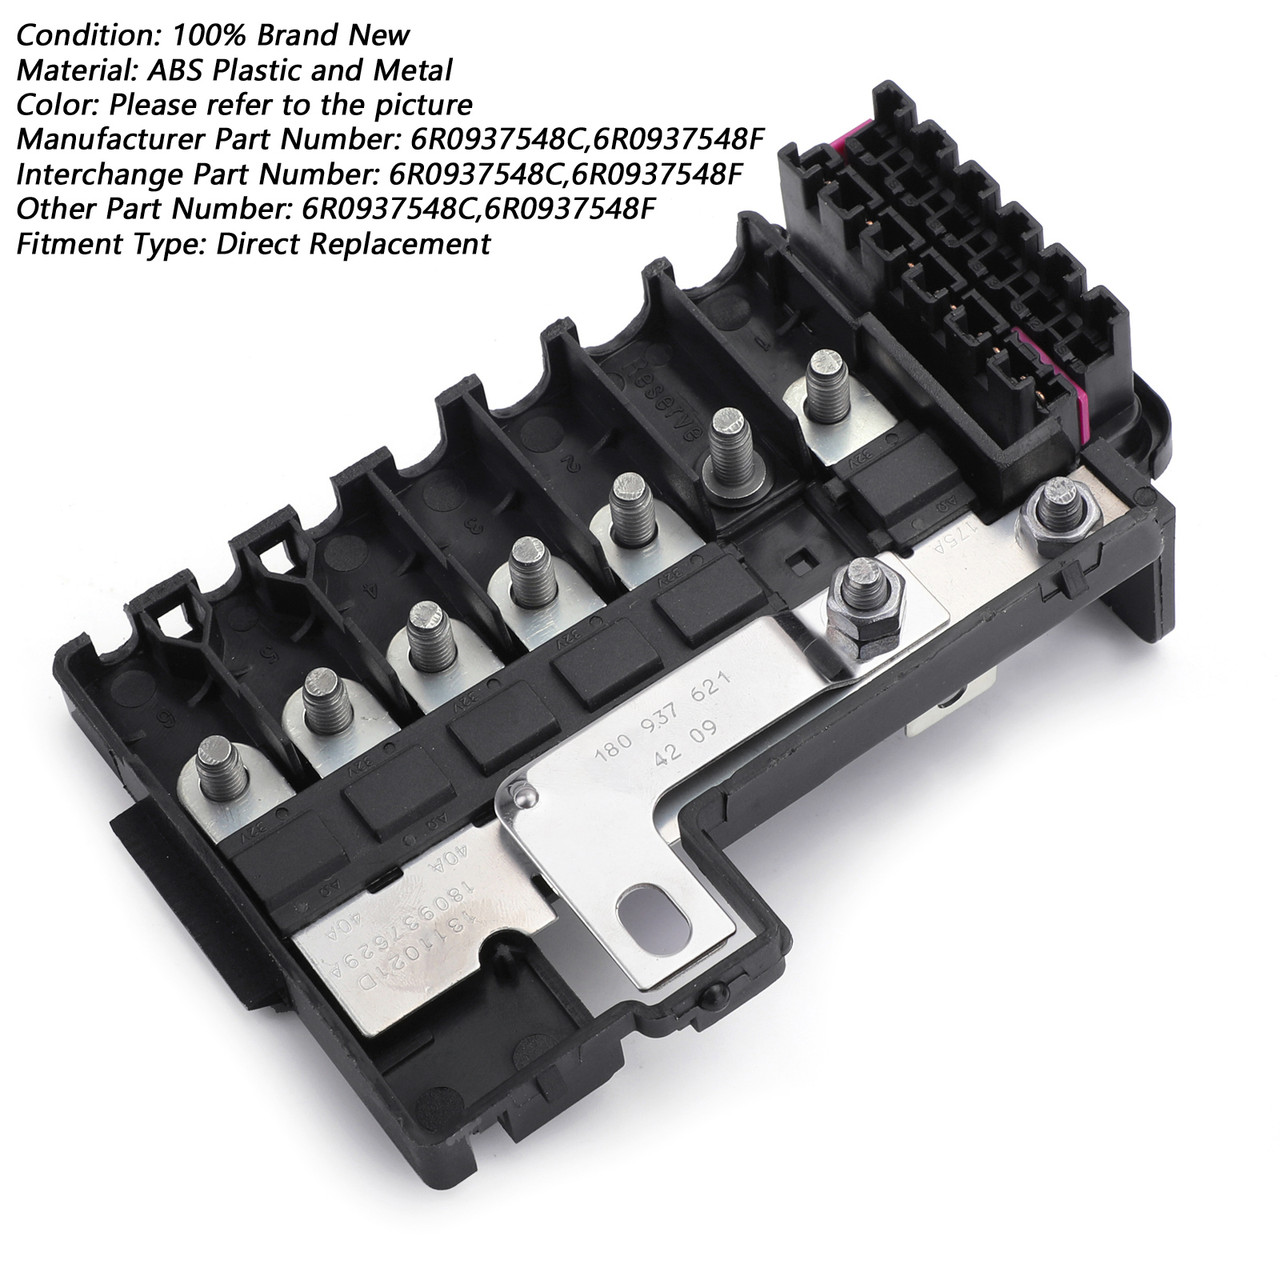 fuse box black fuse box battery terminal for vw jetta mk6 vw polo 11 15 vw up 11  fuse box battery terminal for vw jetta